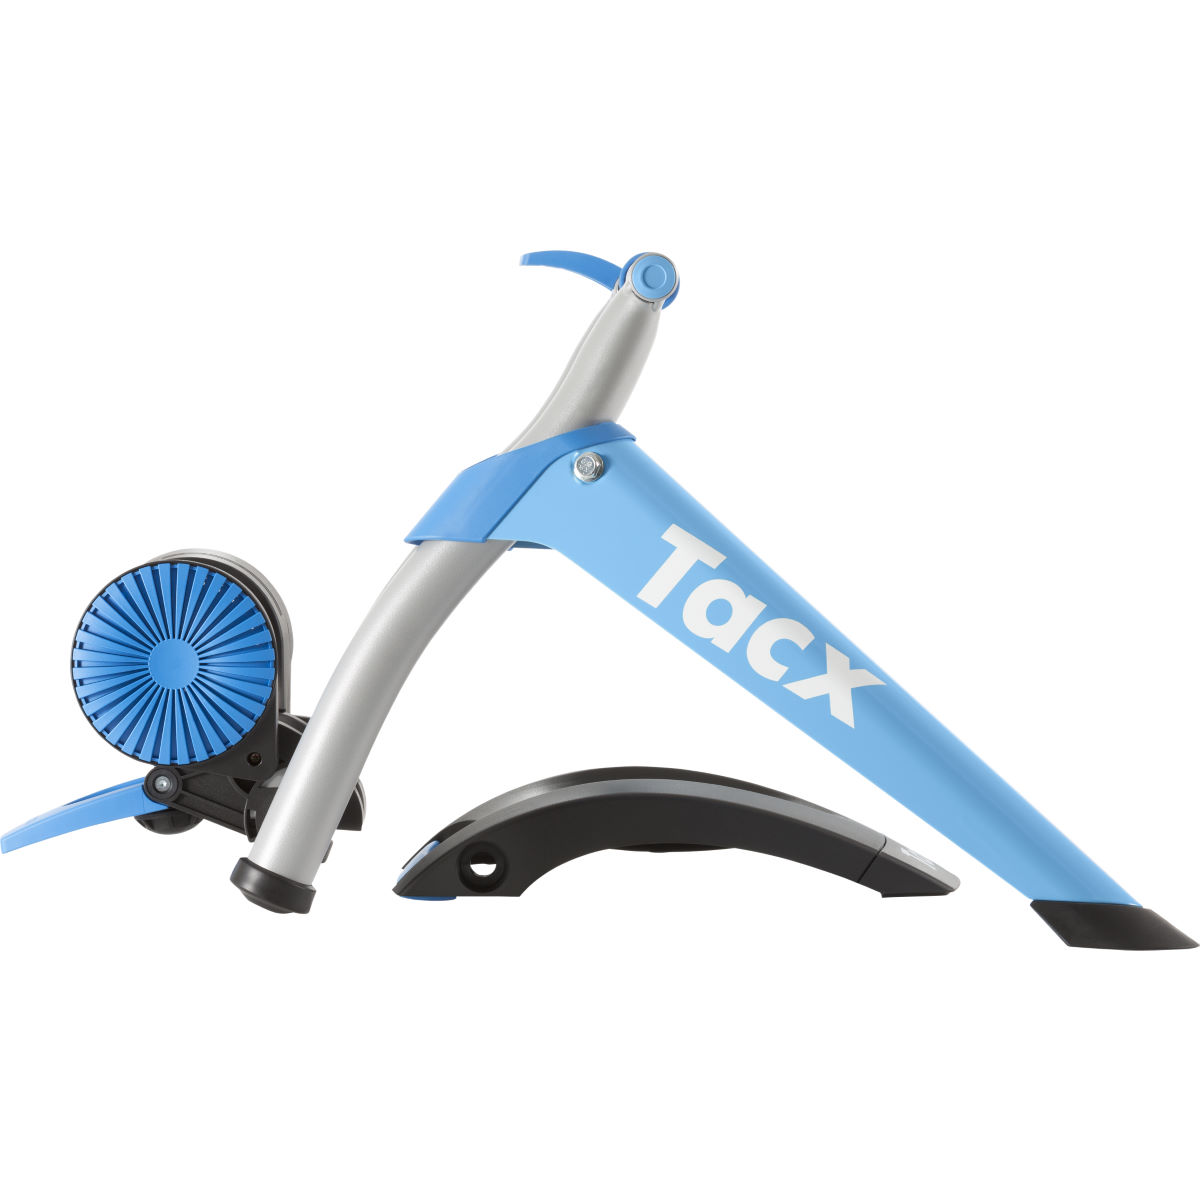 Rodillo magnético plegable Tacx Booster Ultra High Power - Rodillos fijos